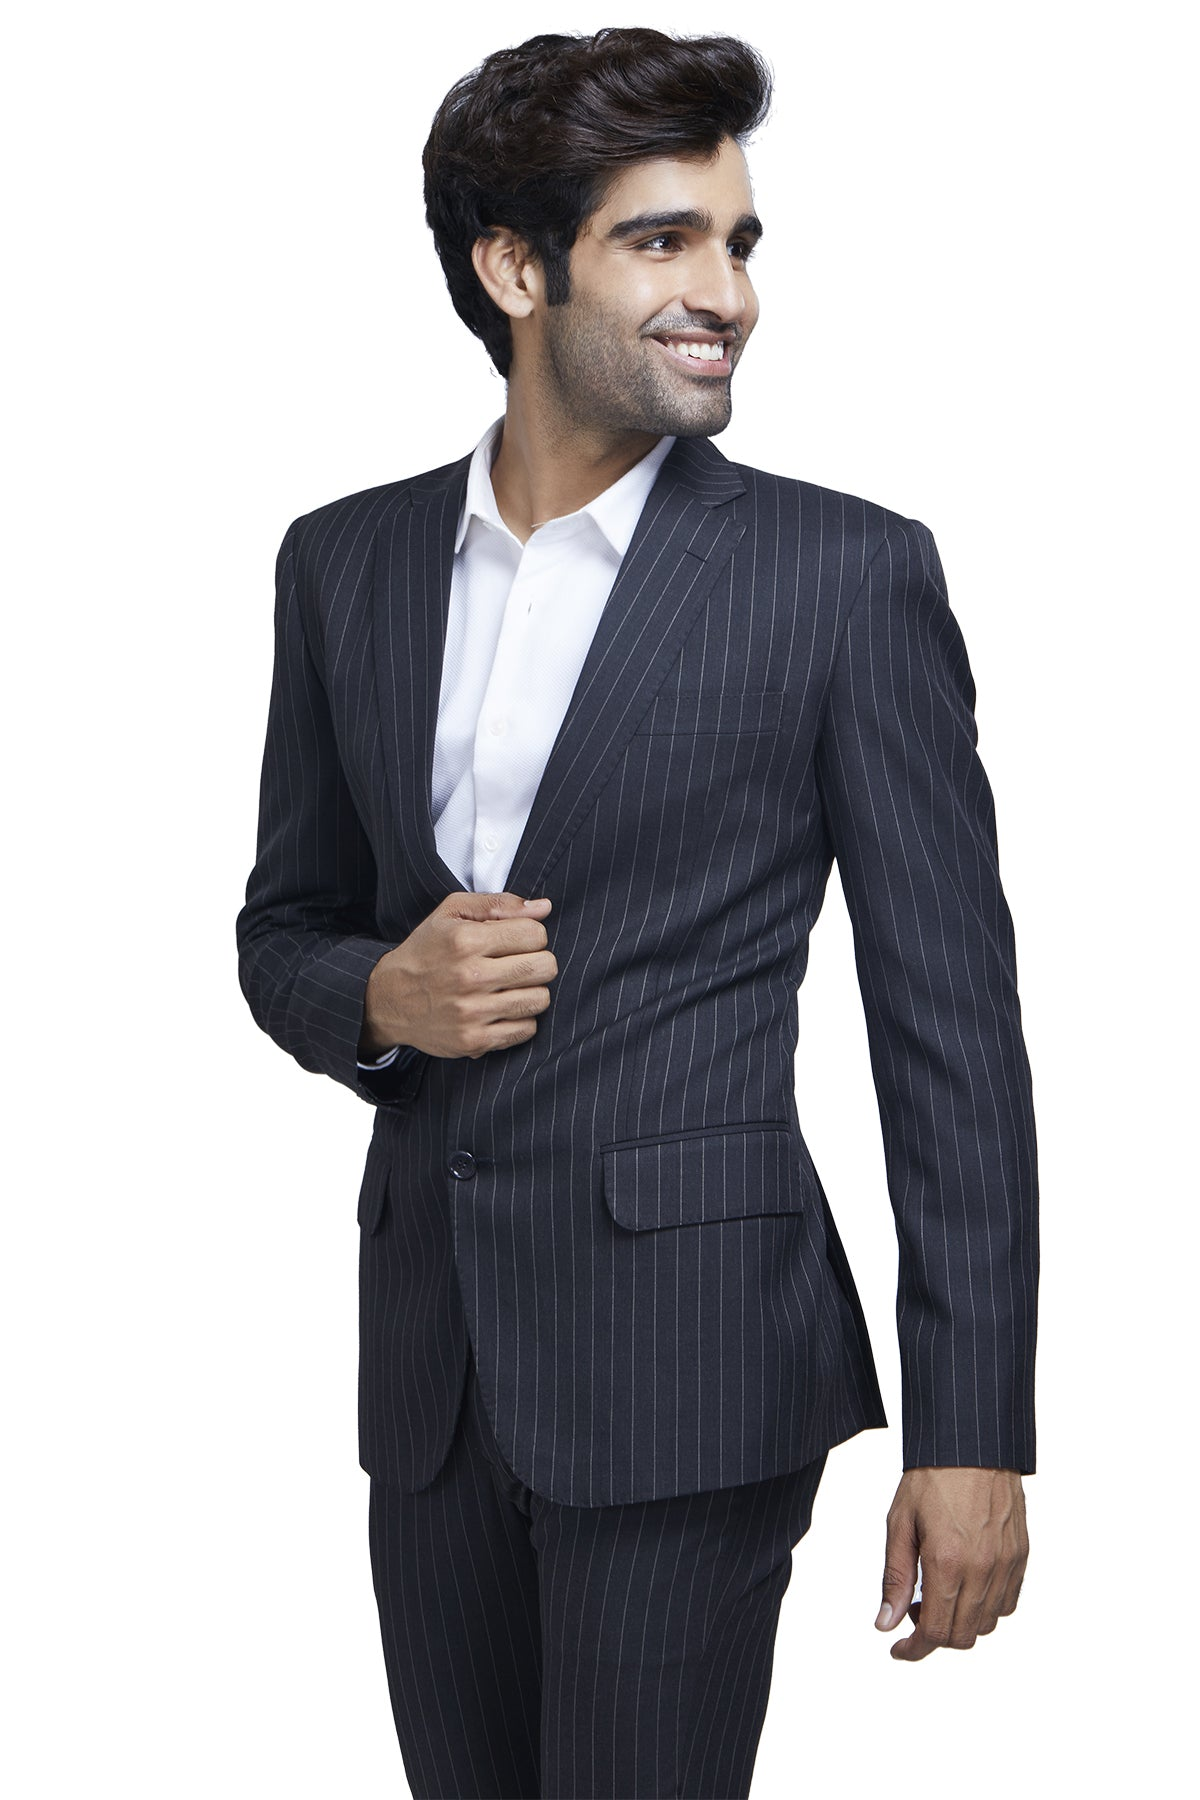 Black wide striped suit